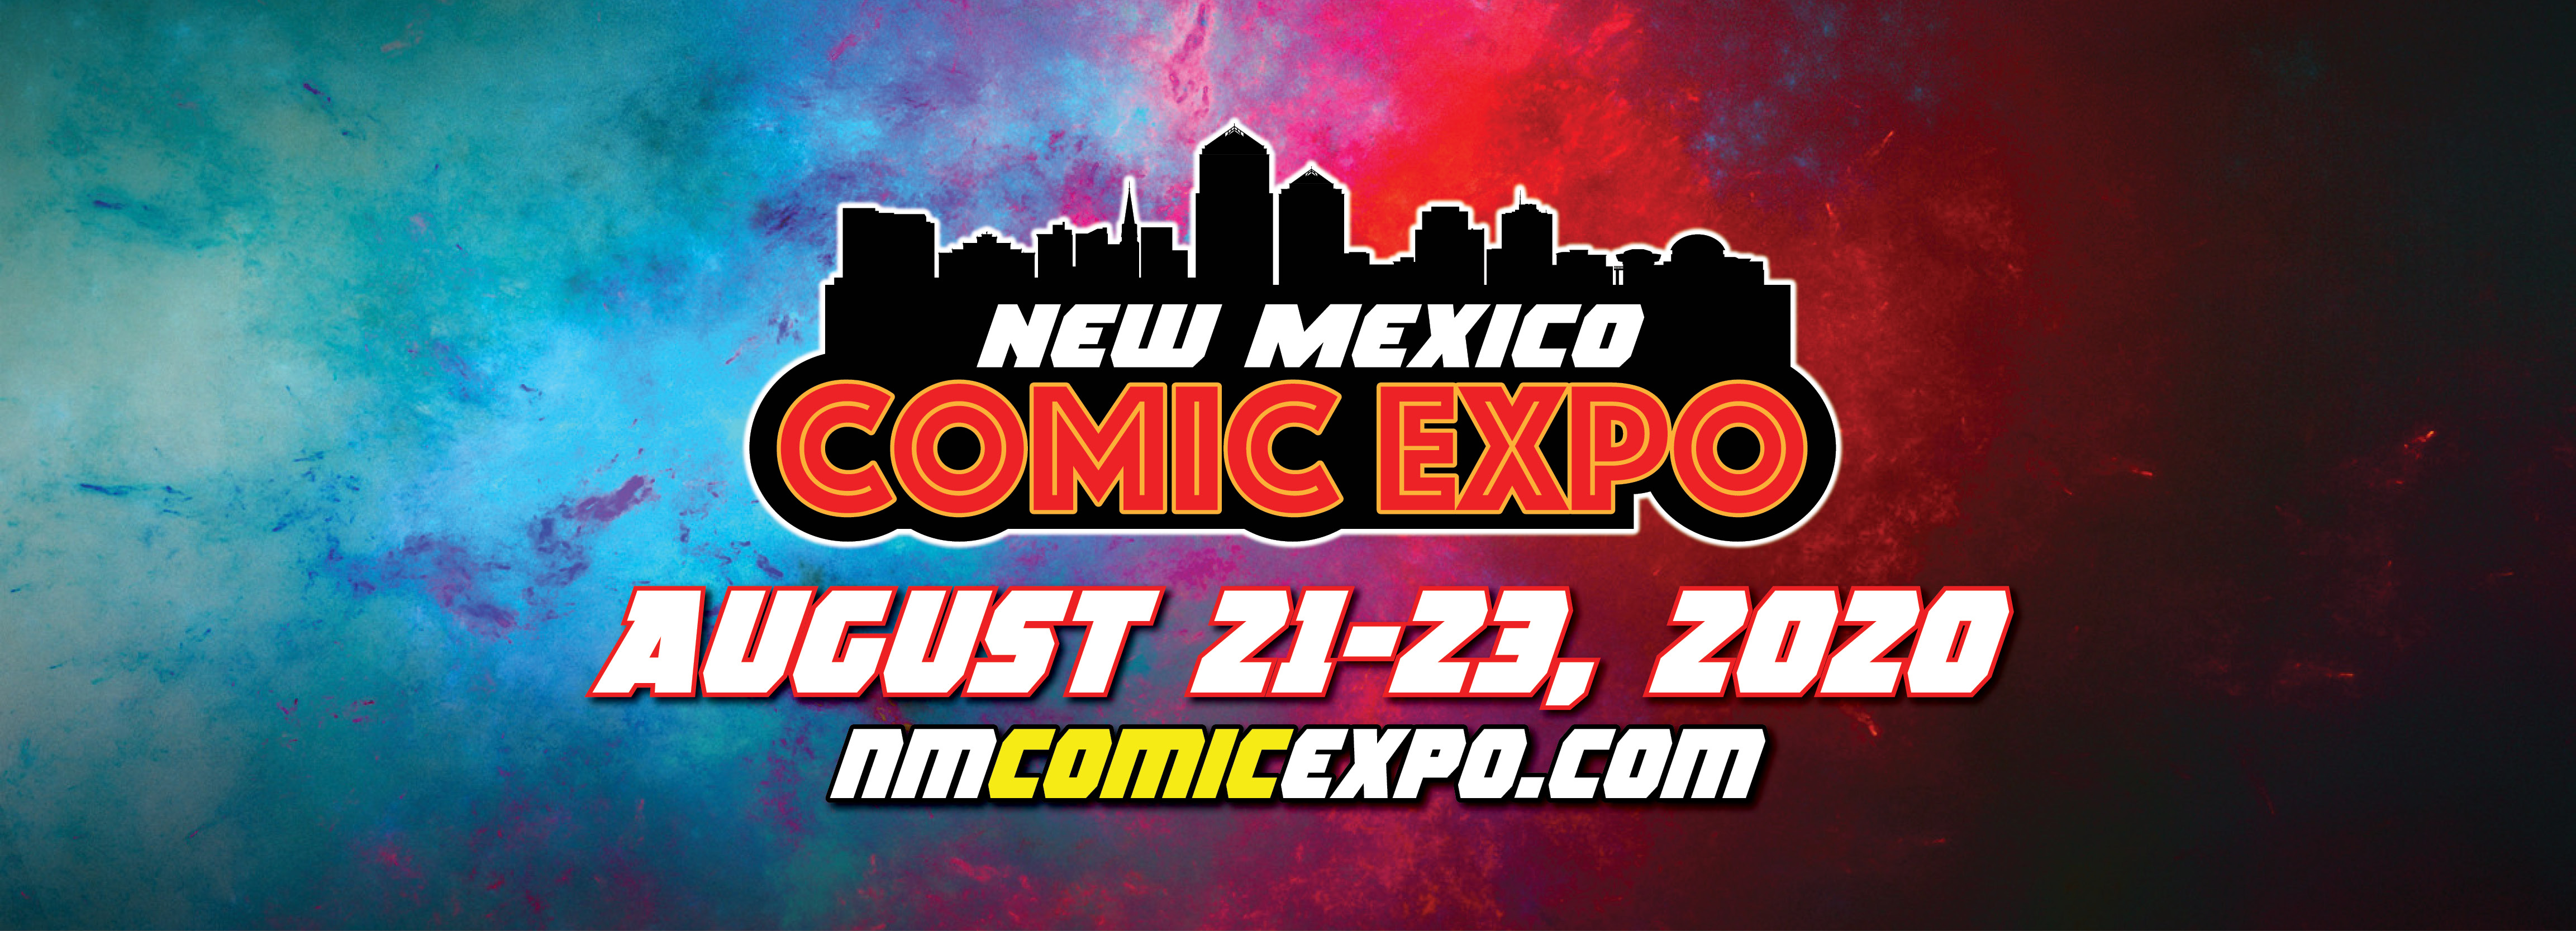 New Mexico Comic Expo